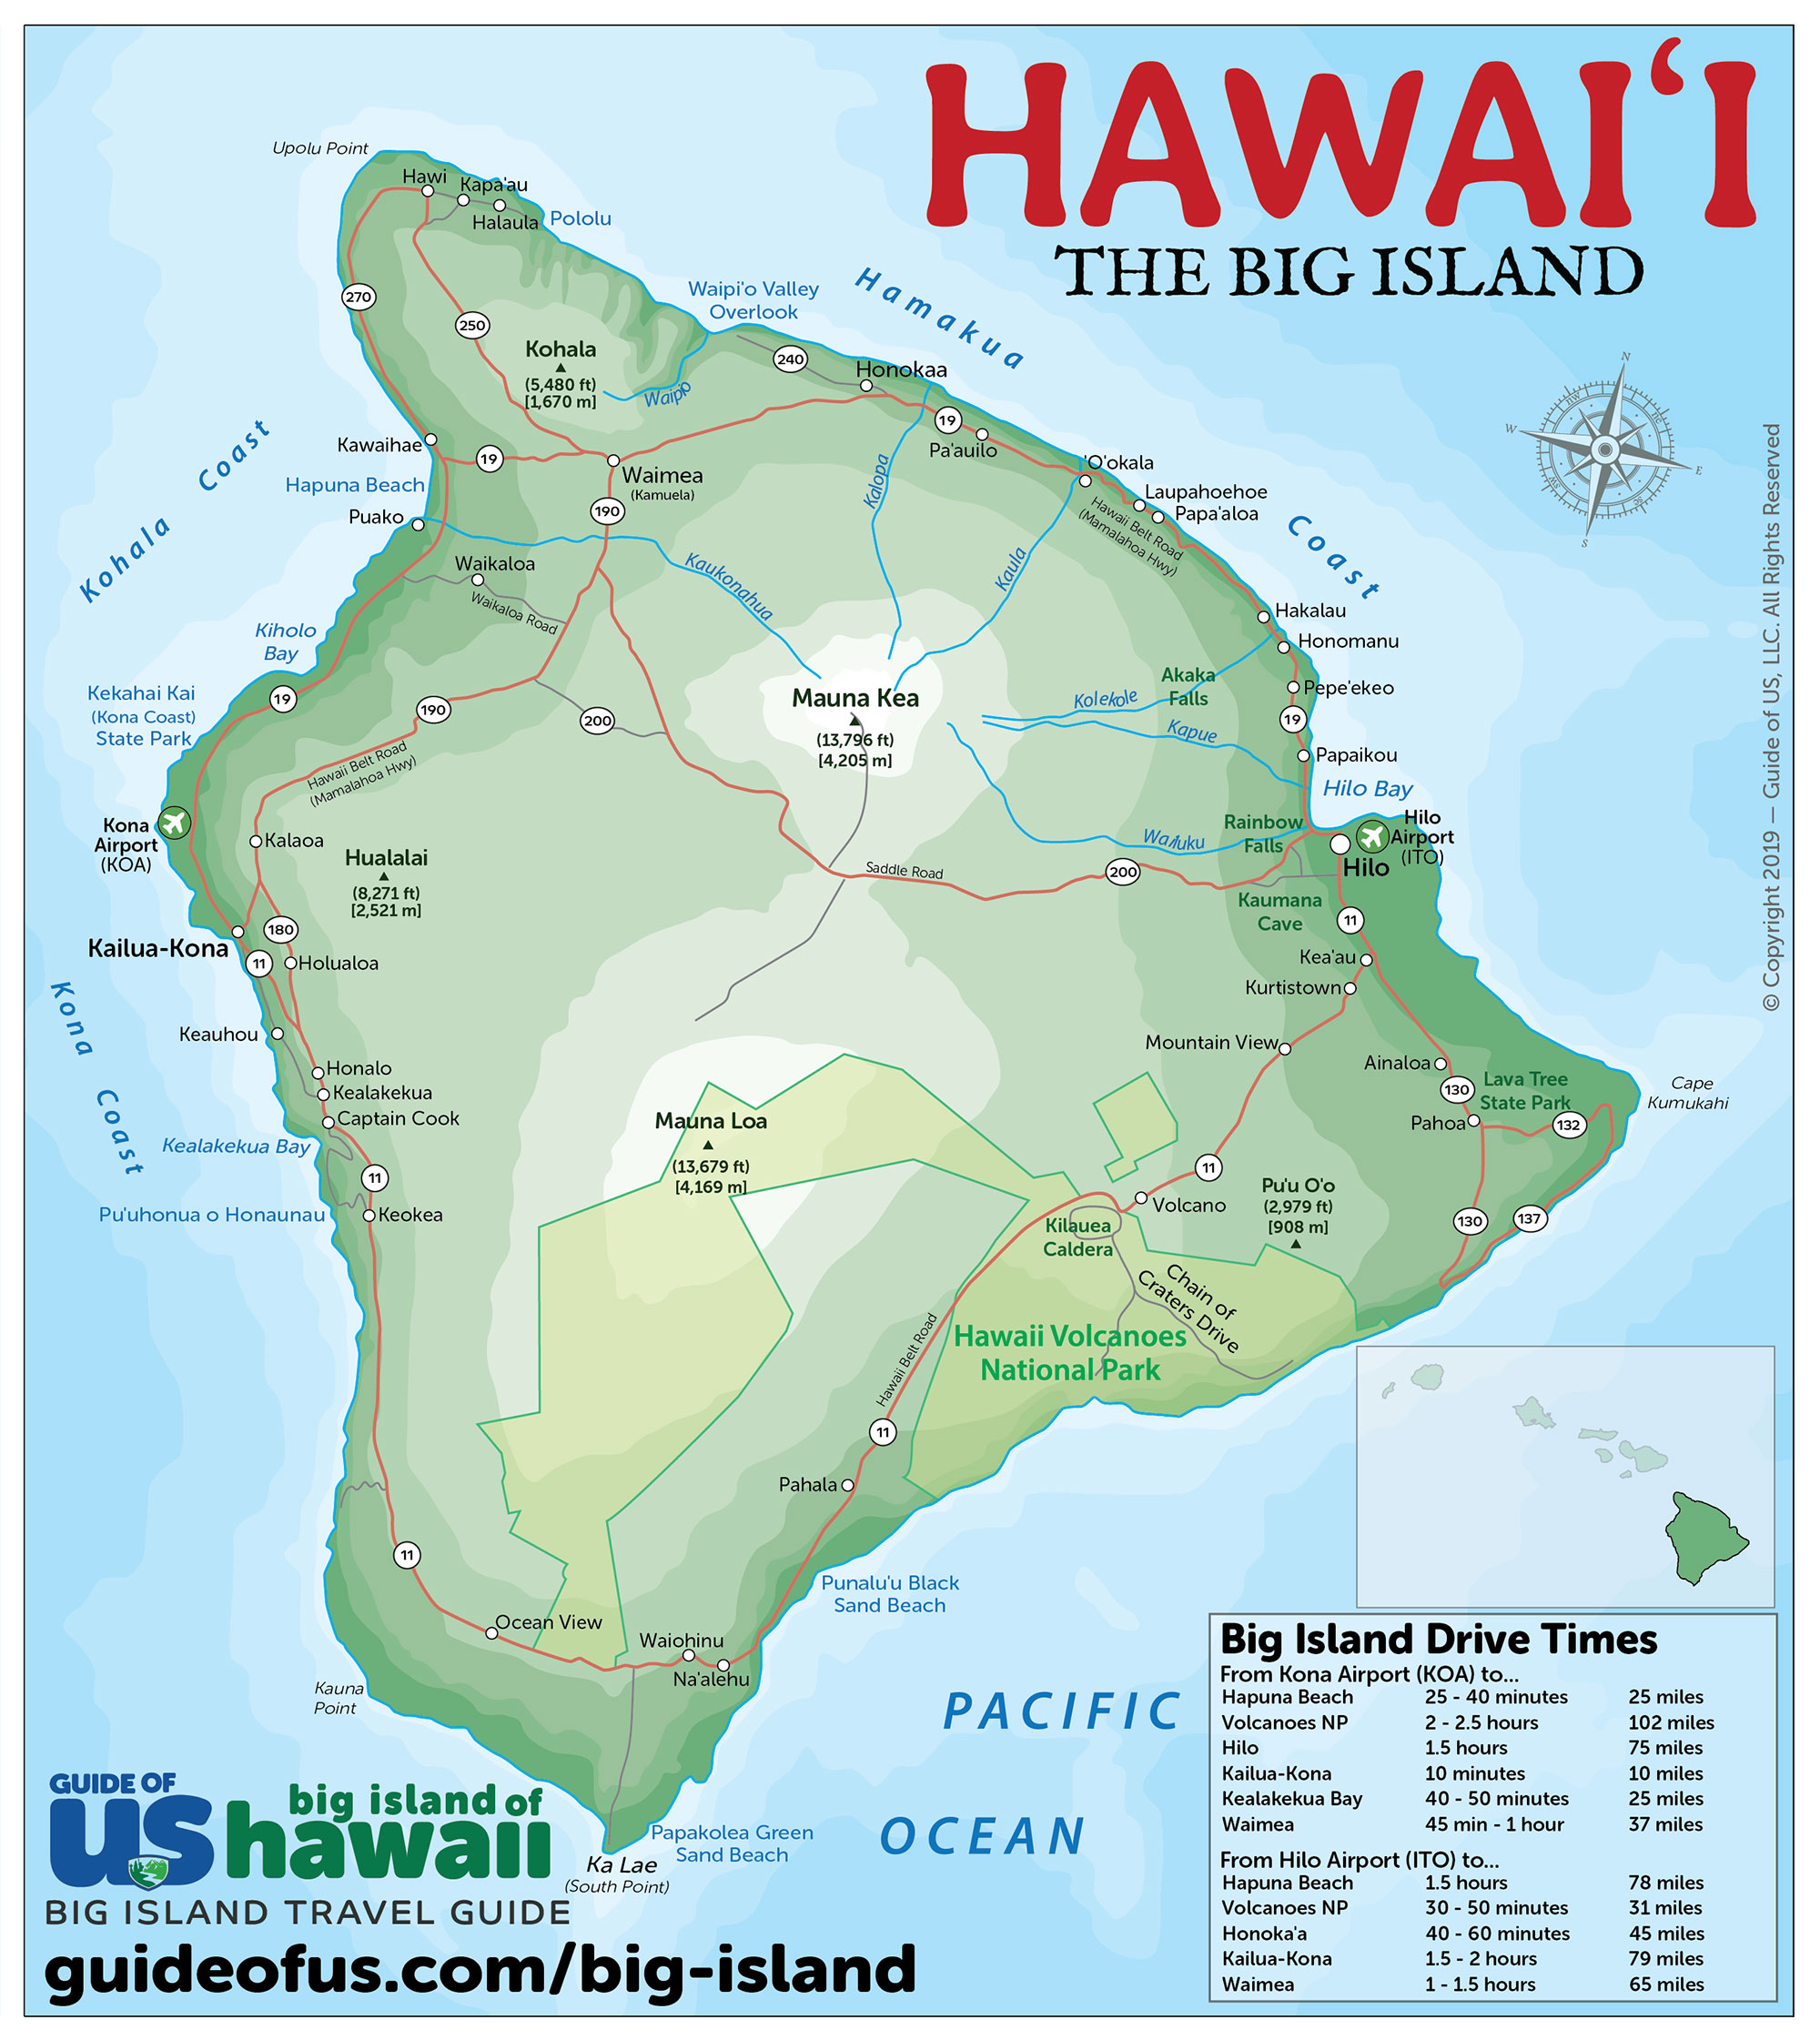 Big Island of Hawaii Maps on map of the grand canyon, map of arizona, map of michigan, map of philippines, map of hawaiian islands, map of americas, map of cleveland, map of north carolina, map of usa, map of illinois, map of waikiki, map of mexico, map of pearl harbor, map of italy, map of oahu, map of guam, map of florida, map of massachusetts, map of the panama canal, map of maine, map of texas, map of molokai, map of new jersey, map of maui, map of virginia, map of alaska, map of china, map of bahamas, map of kauai, map of canada, google maps hawaii, map of mauna loa, map of ohio, map of united states, map of georgia, map of delaware, map of new york, map of big island, map of california,